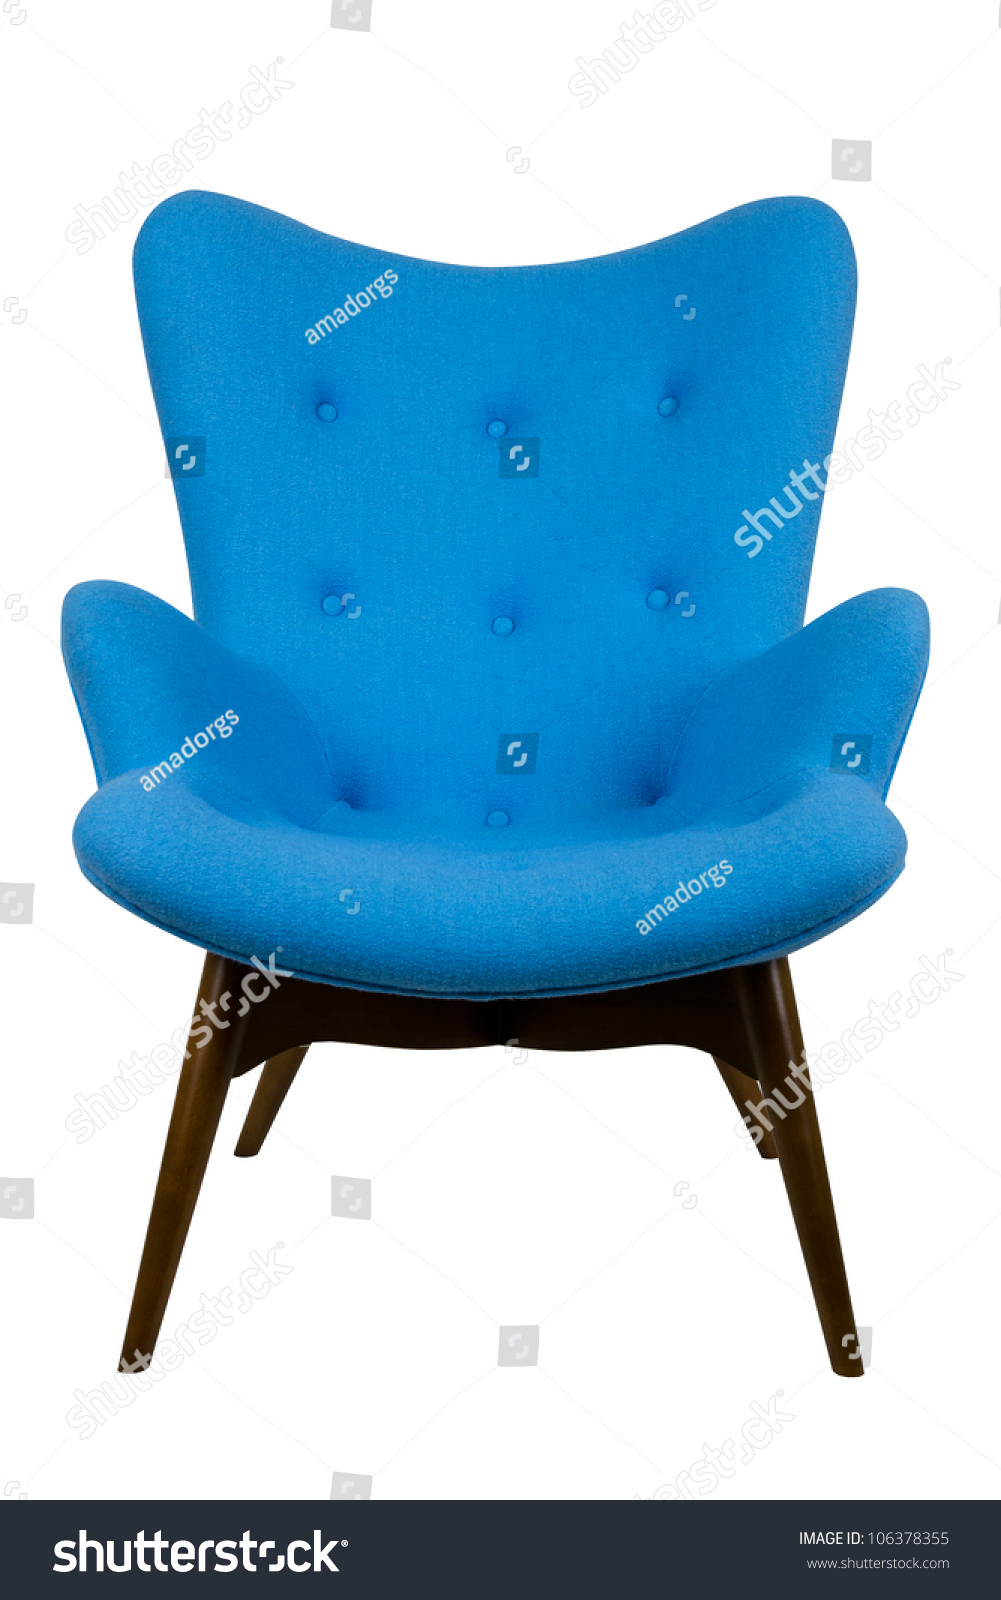 modern blue chair in style